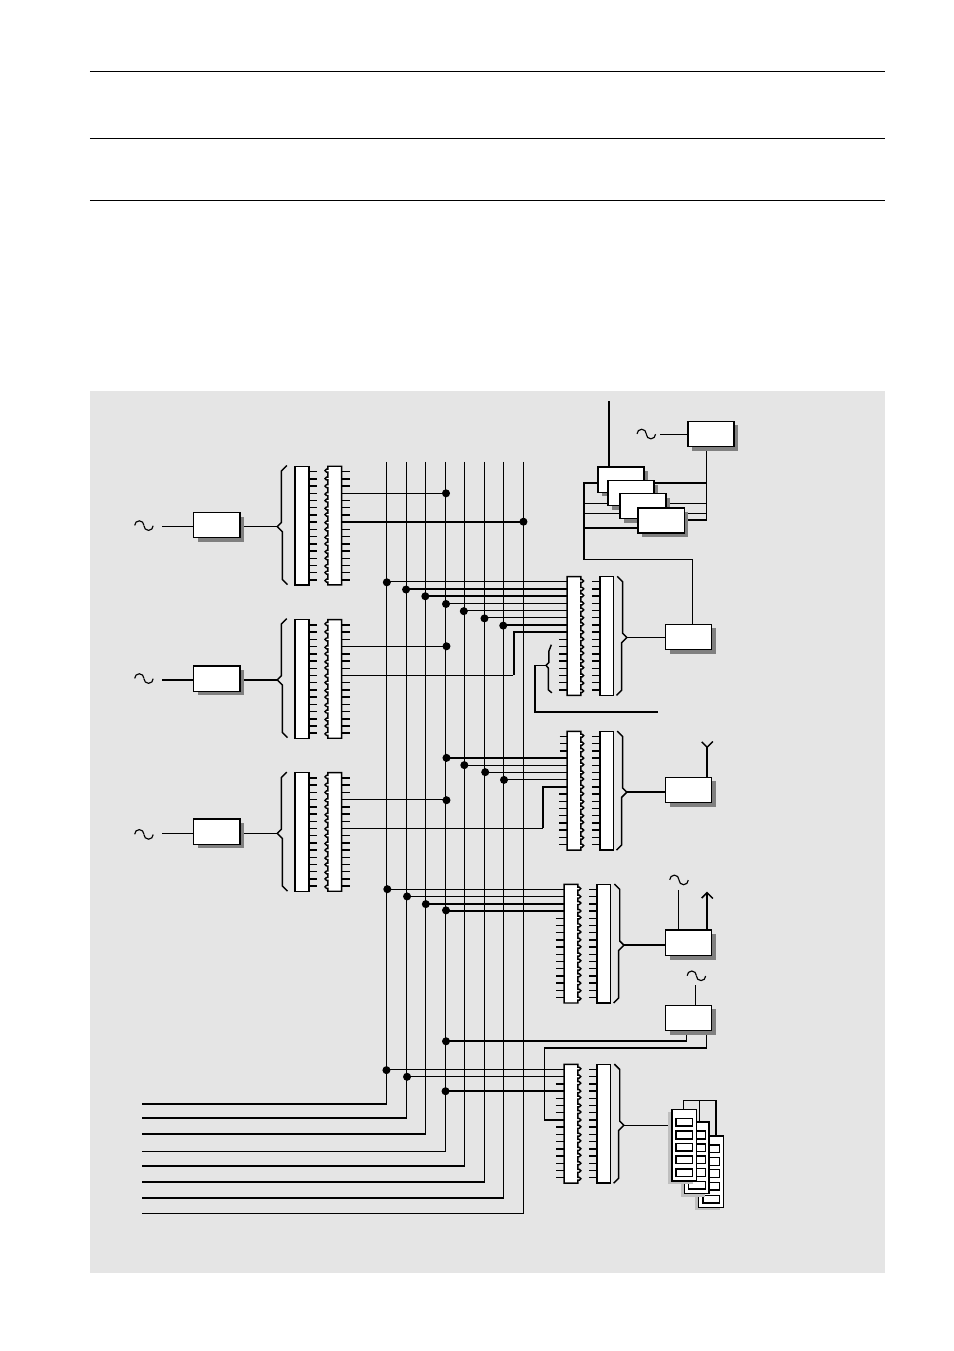 15 Pin Wiring Diagram Audio Philips Schematic Diagrams Amp E39 Radio Dp 6000 User Manual Page 11 Also For Lbb 5800 Stereo Harness Color Codes